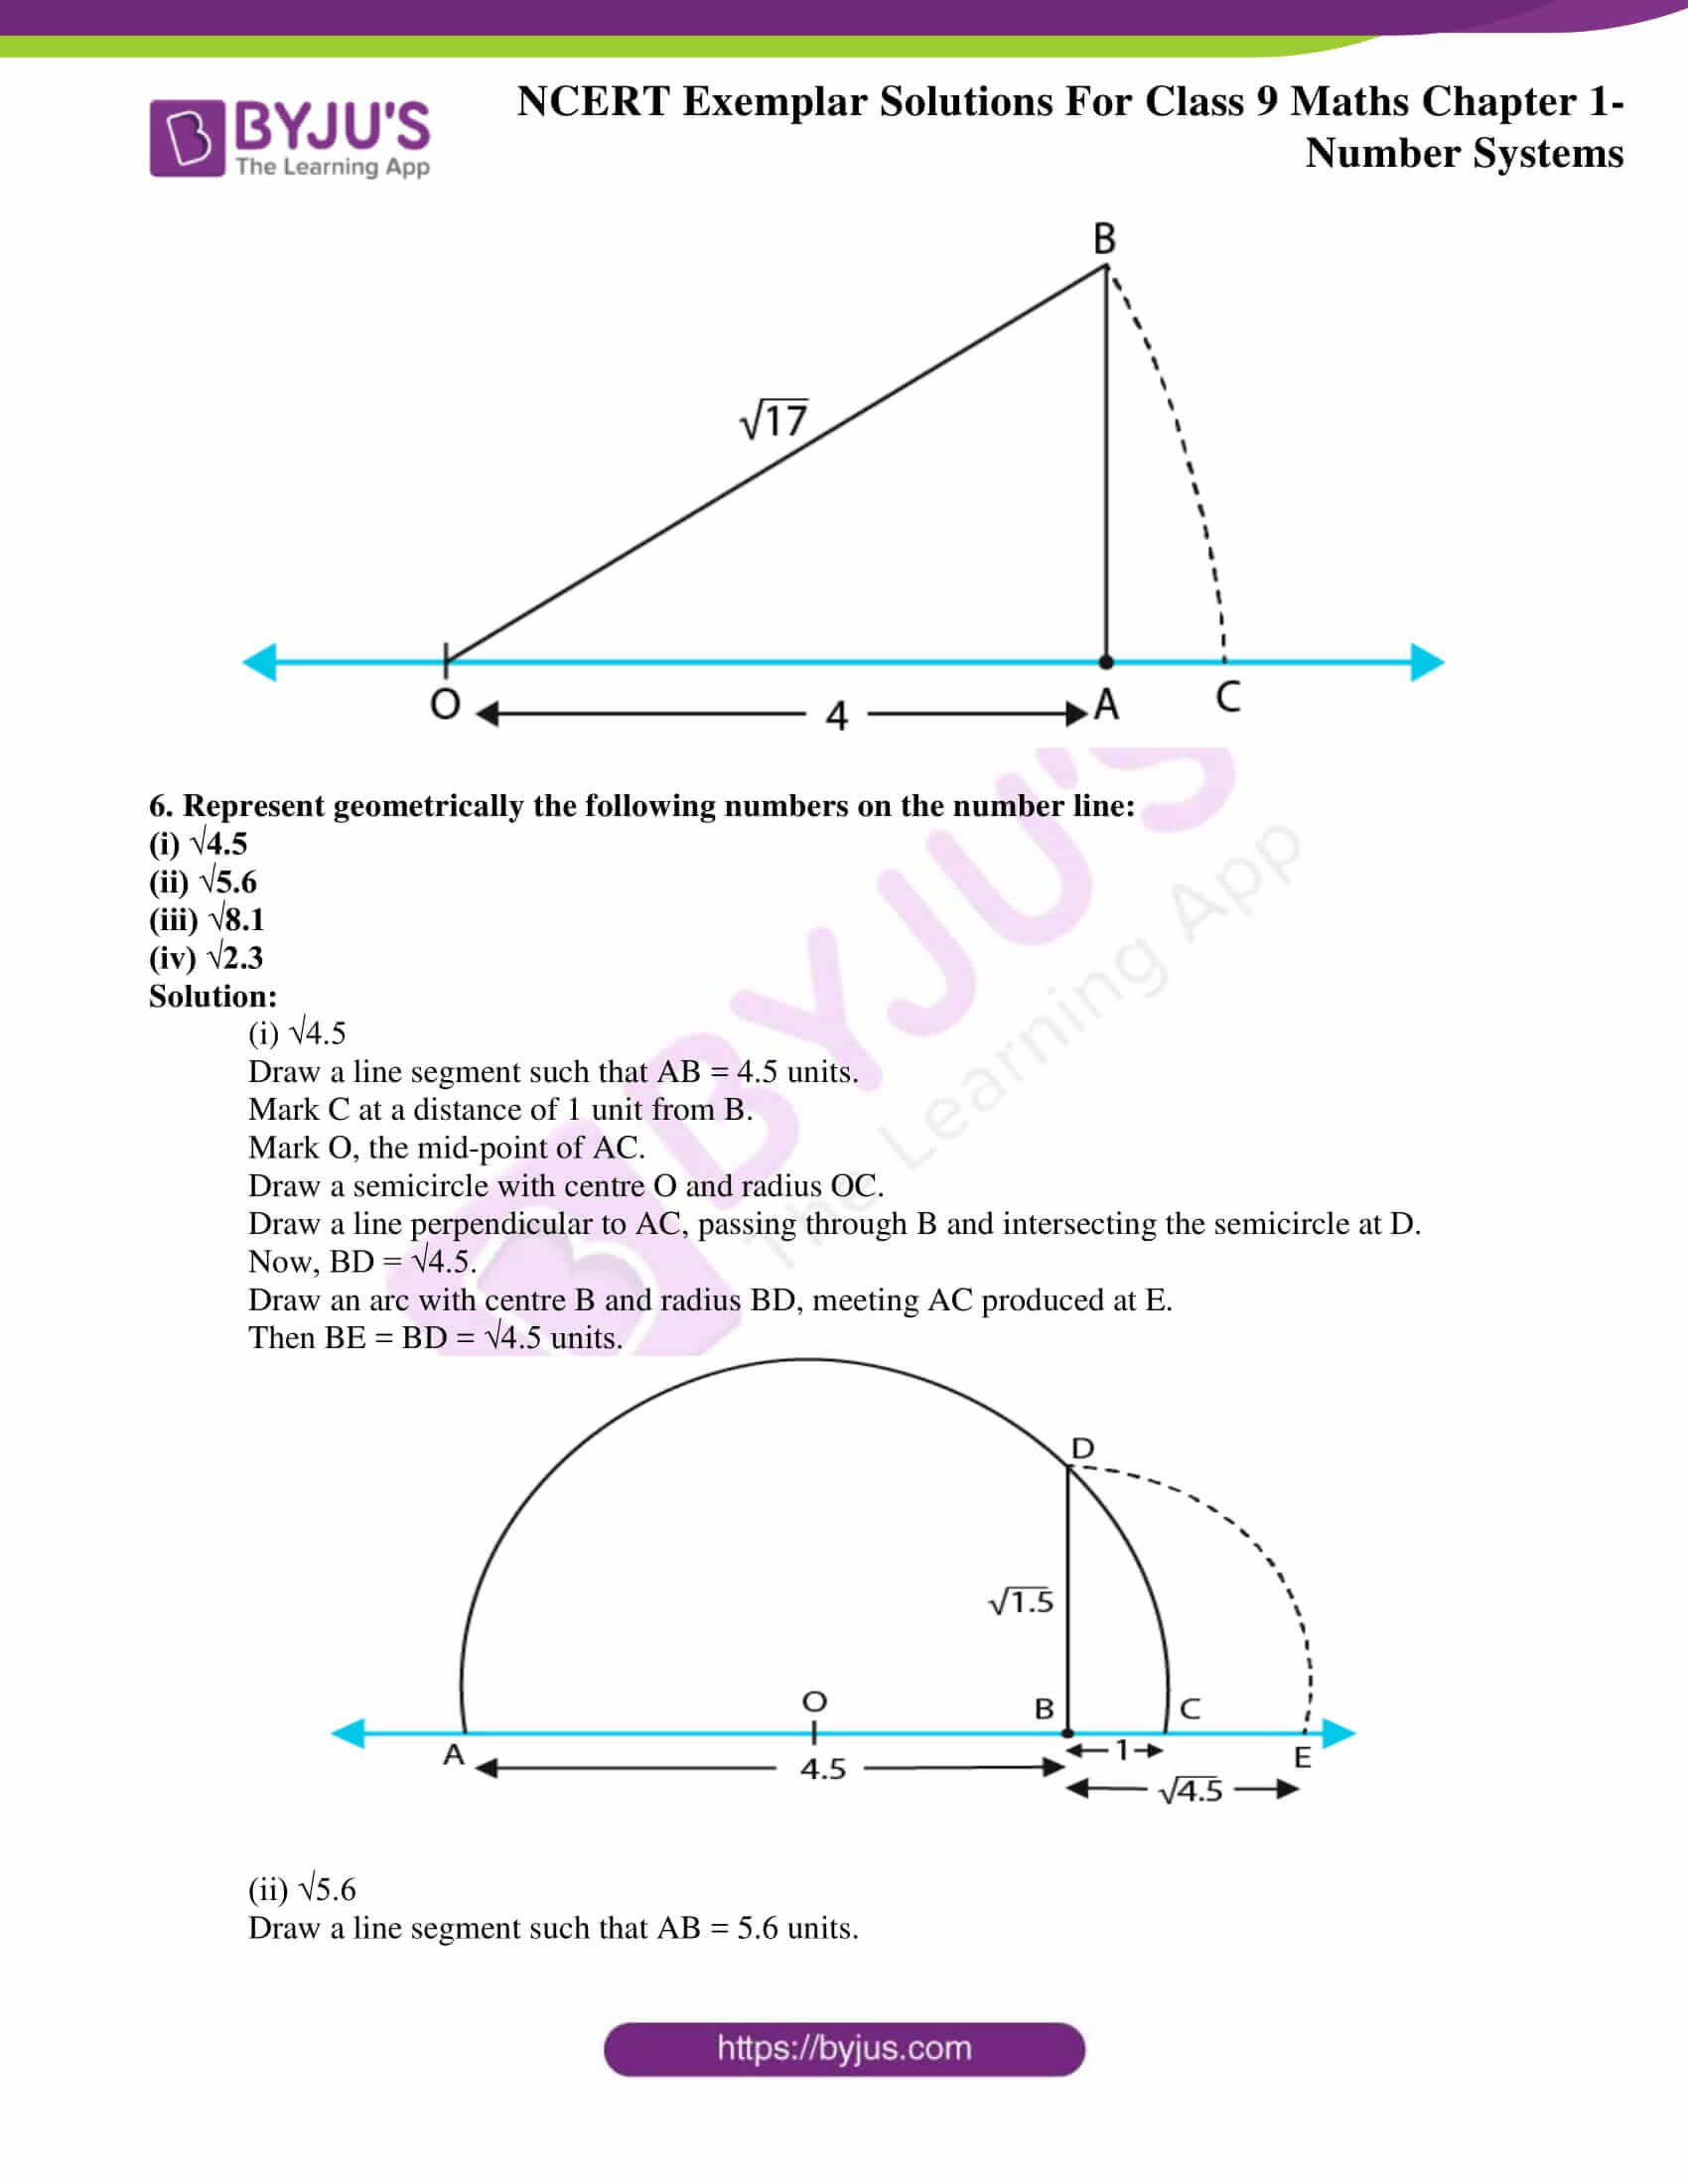 NCERT Exemplar Solutions for Class 9 Maths Chapter 1 11